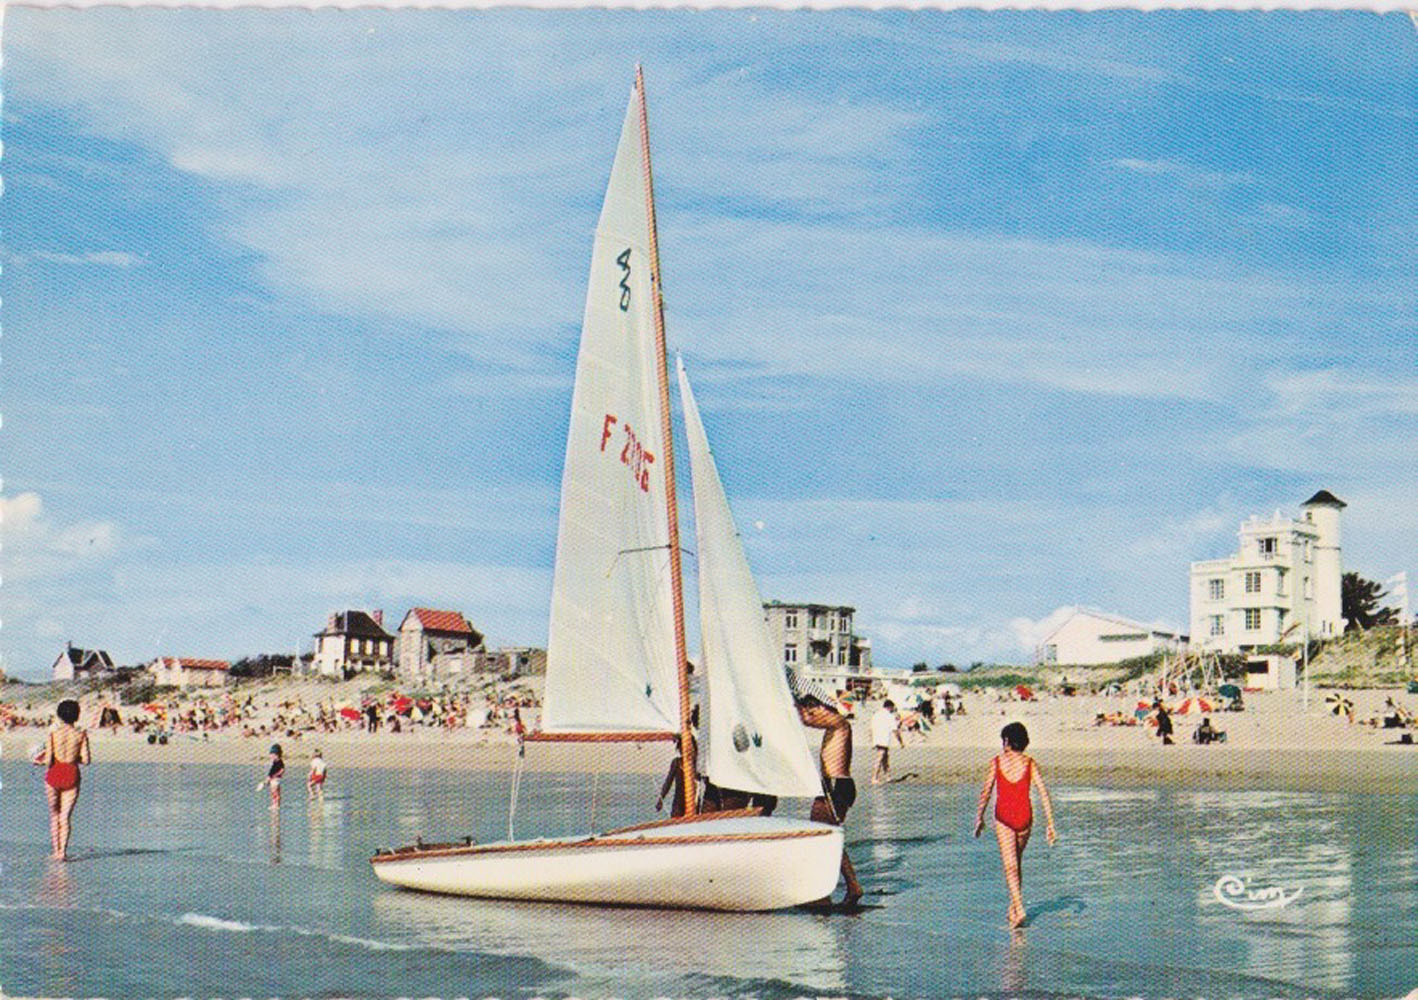 1970 St Martin Plage 3 © collection Jean Claude Ferret